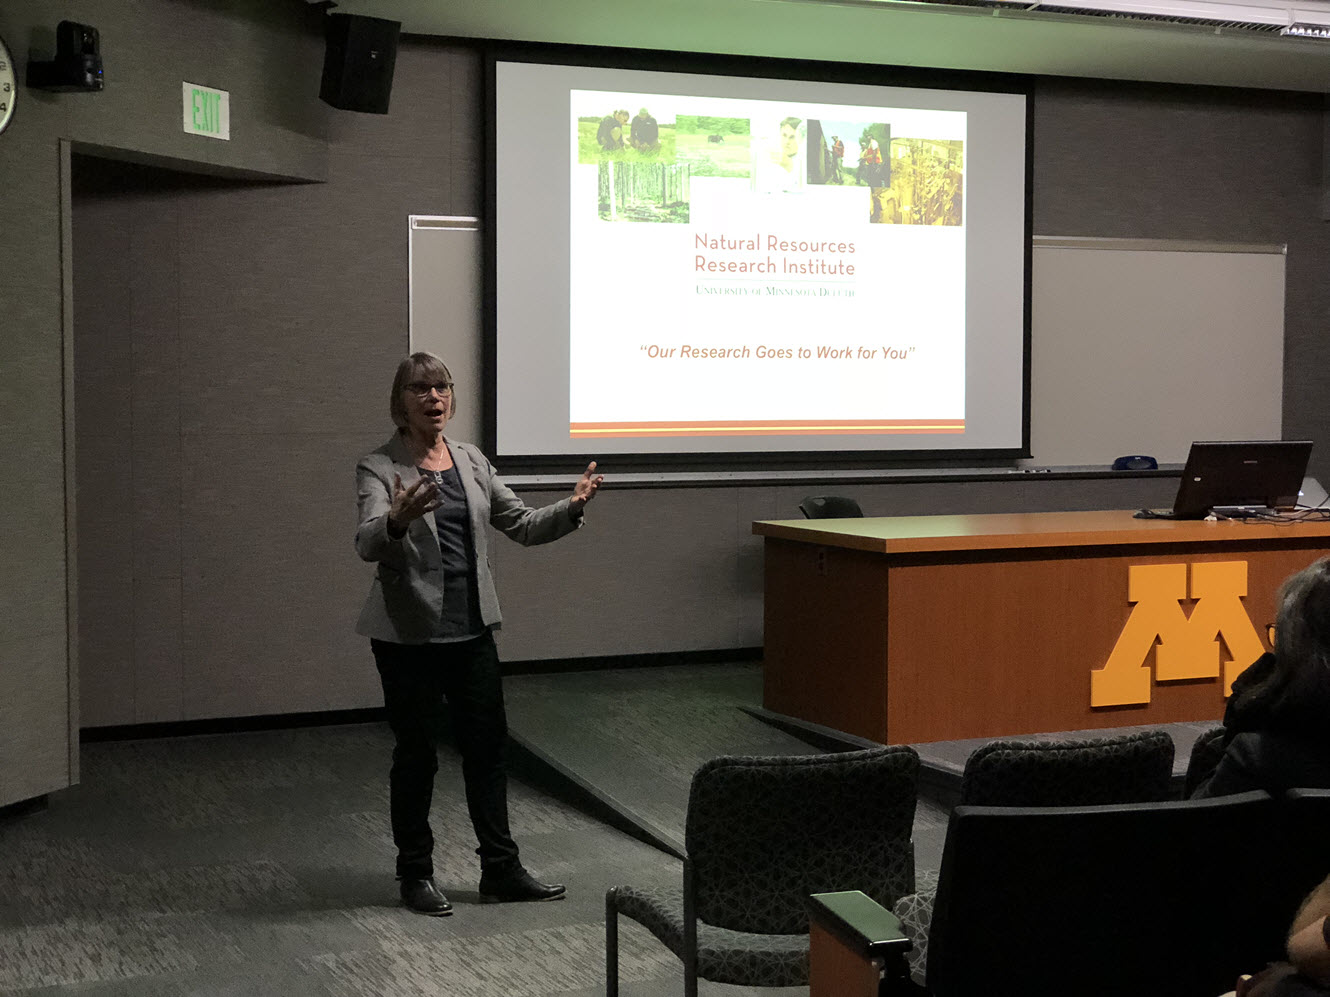 Univ of Minnesota, Lucinda Johnson, GIS Day 2017